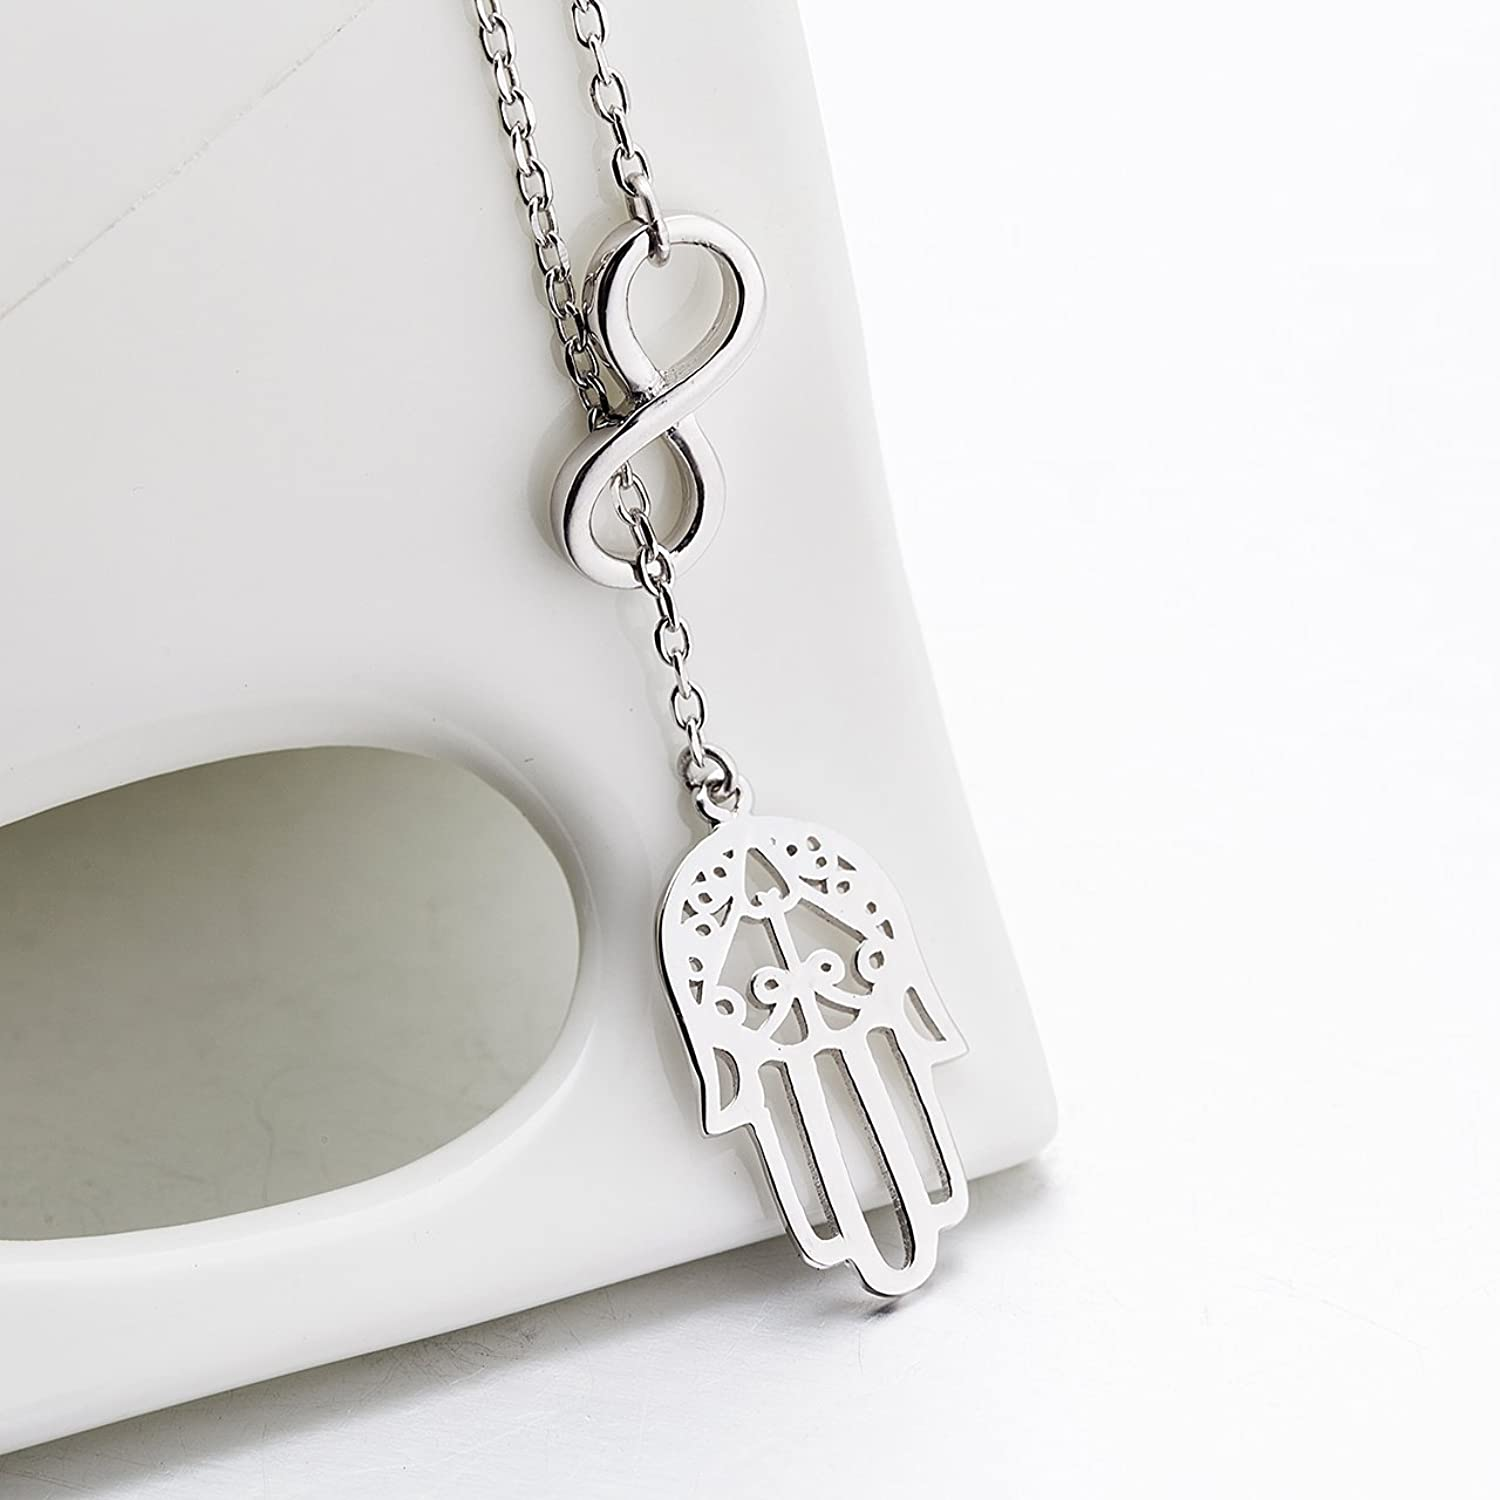 Silver mountain 925 sterling silver infinity good luck hamsa fatima silver mountain 925 sterling silver infinity good luck hamsa fatima hand pendant necklace with 175 rolo chain amazon jewellery aloadofball Images